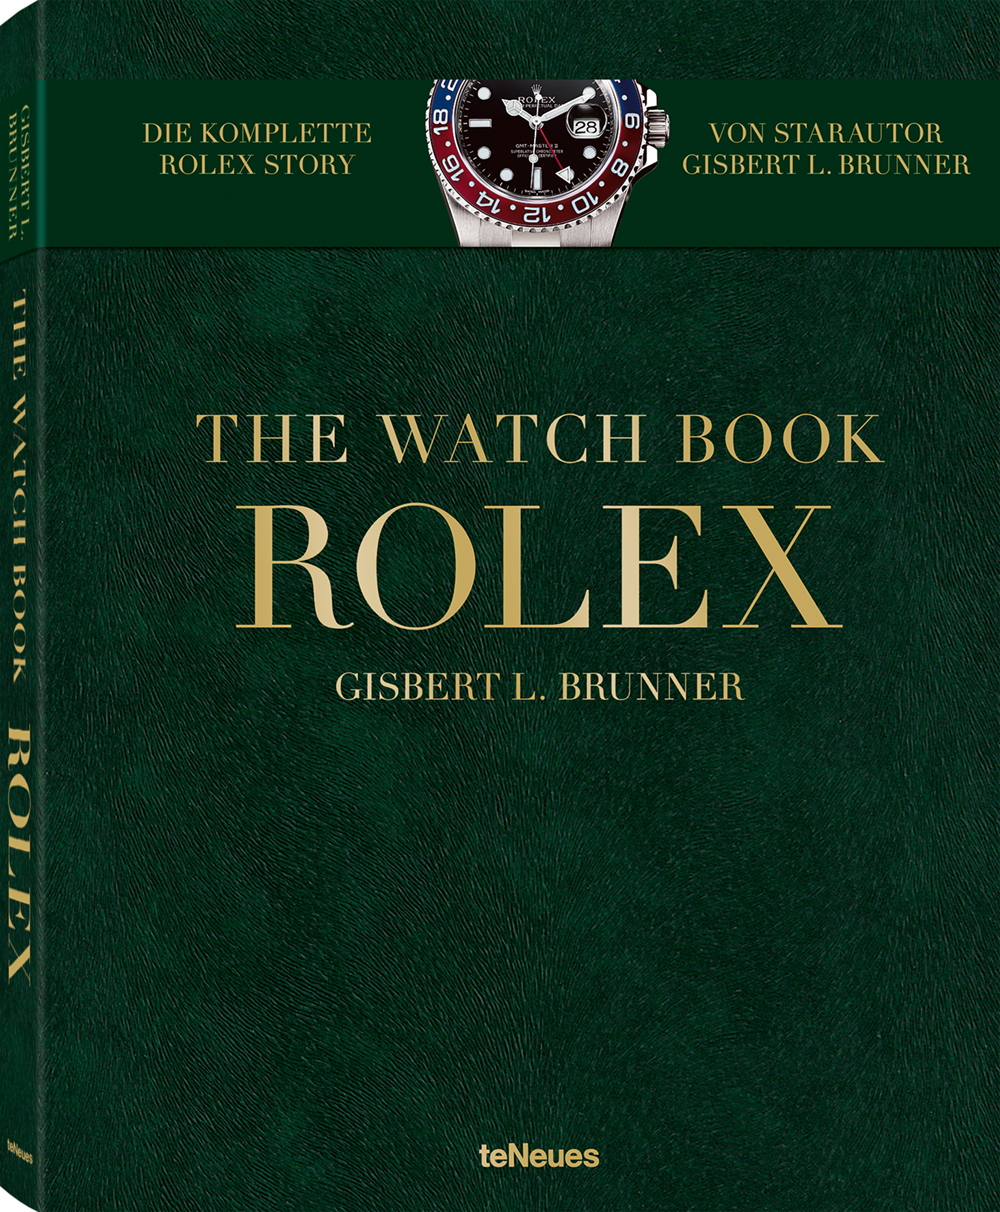 © THE WATCH BOOK ROLEX von Gisbert L. Brunner, erschienen bei teNeues,  € 59,90, www.teneues.com. Photo © Courtesy of Rolex